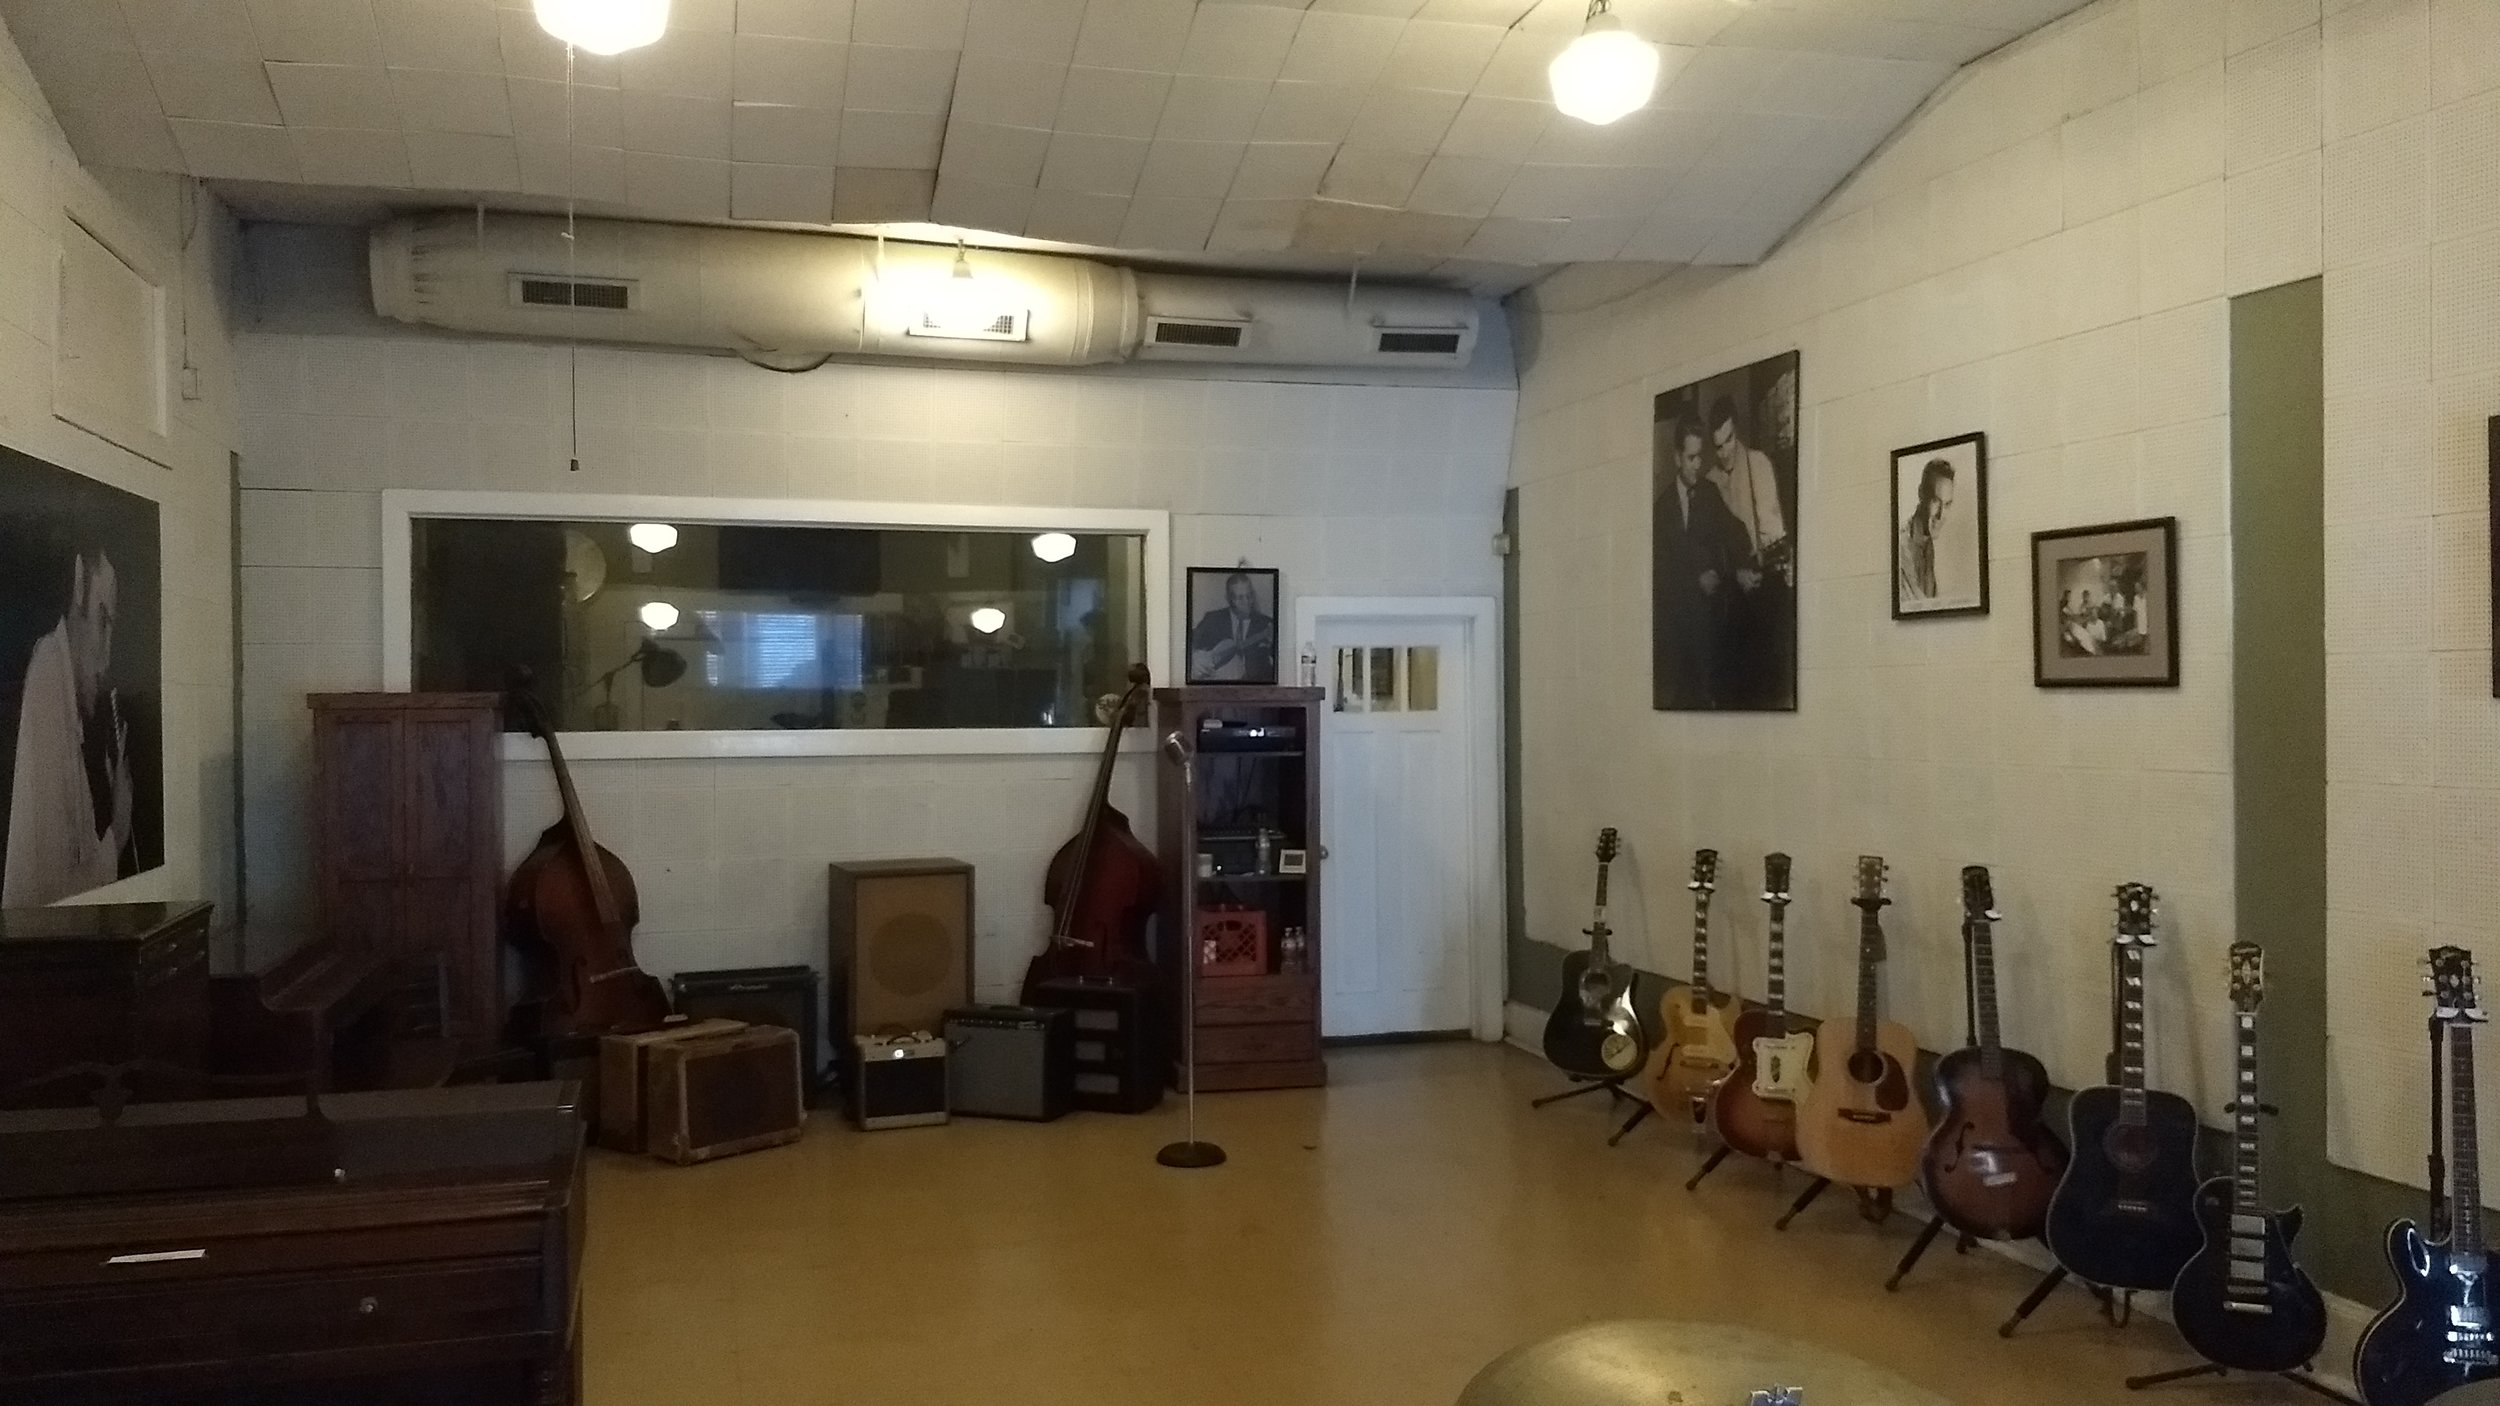 Sun Studio, the small black x next to the mic in the center is where Elvis originally stood when first recording here.